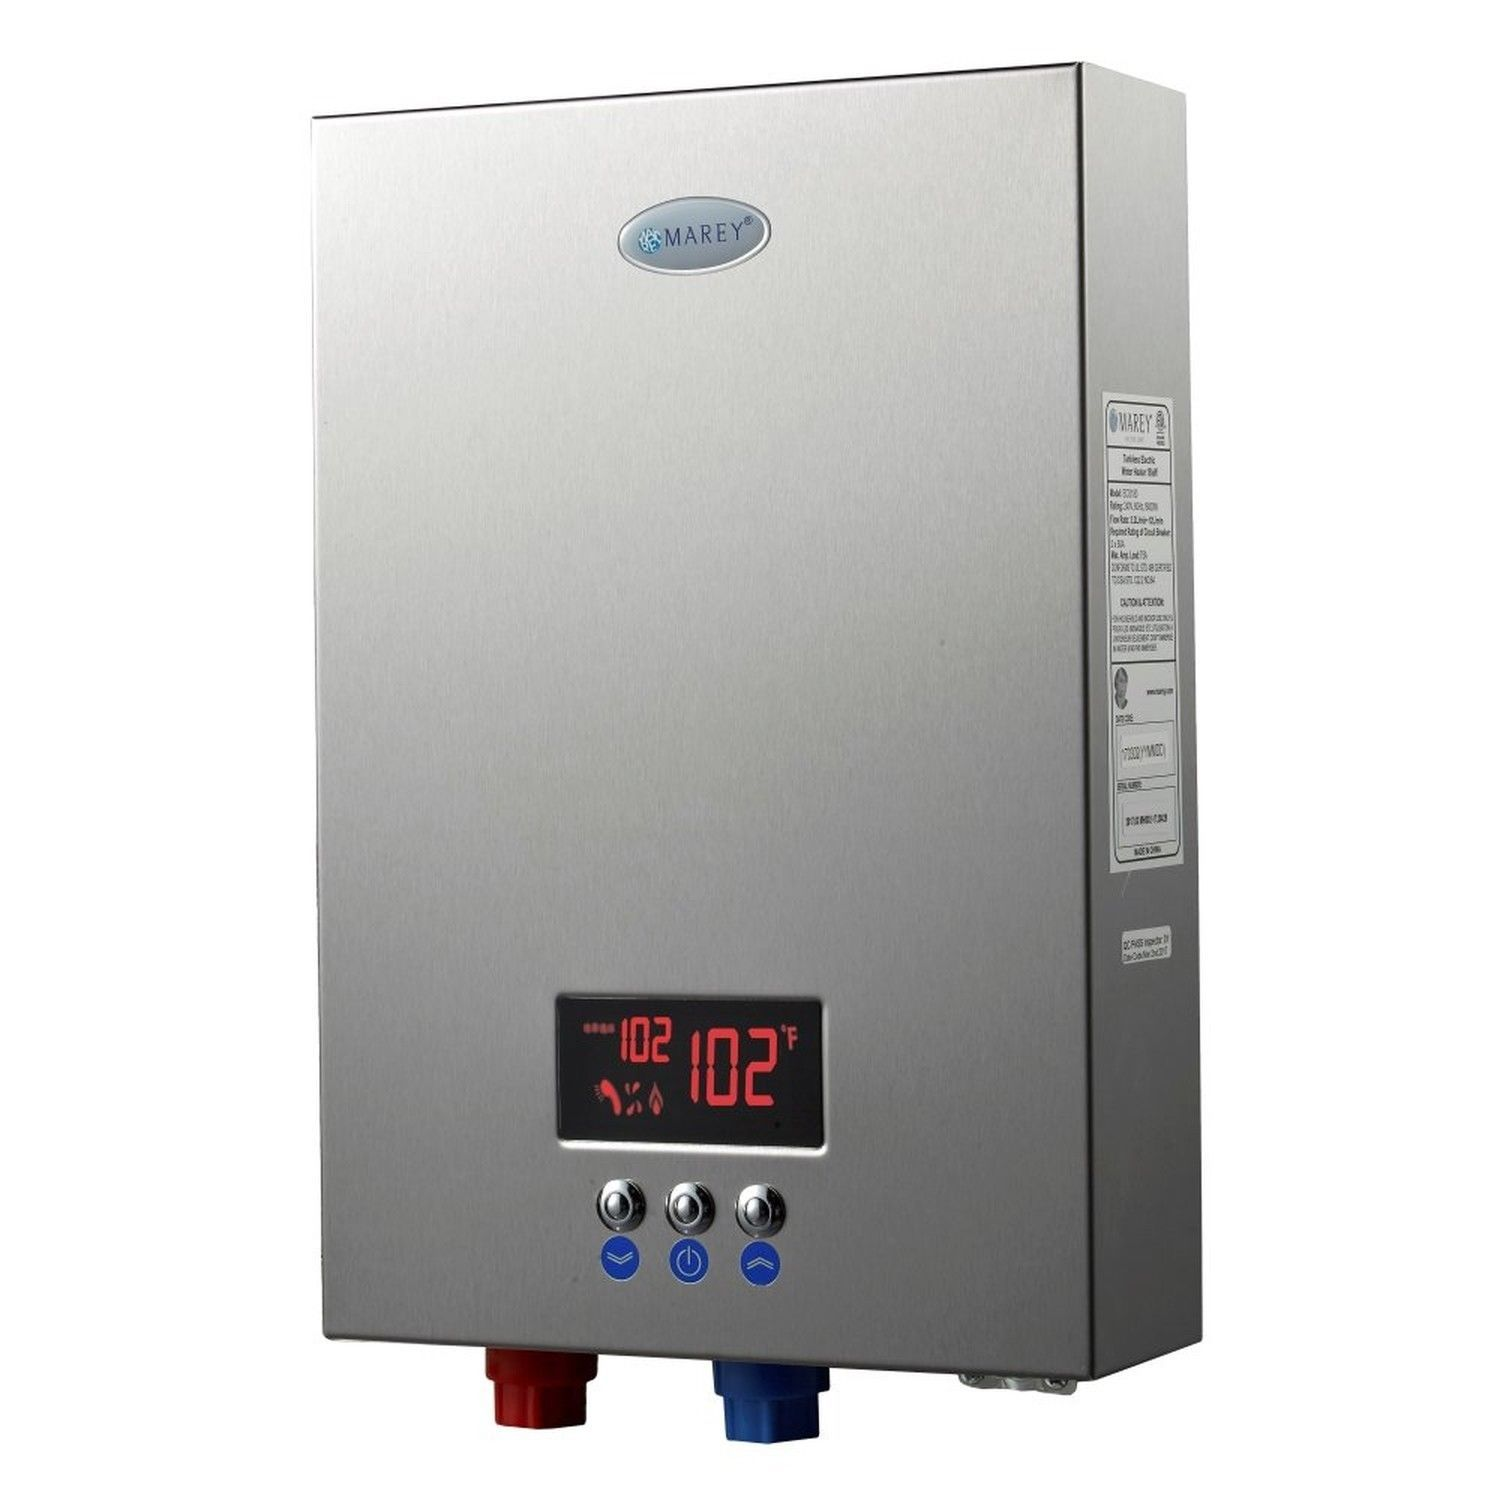 Marey Eco180 Electric Tankless Water Heater Best On Demand 5 Gpm 240v Ebay Electric Water Heater Water Heater Tankless Water Heater